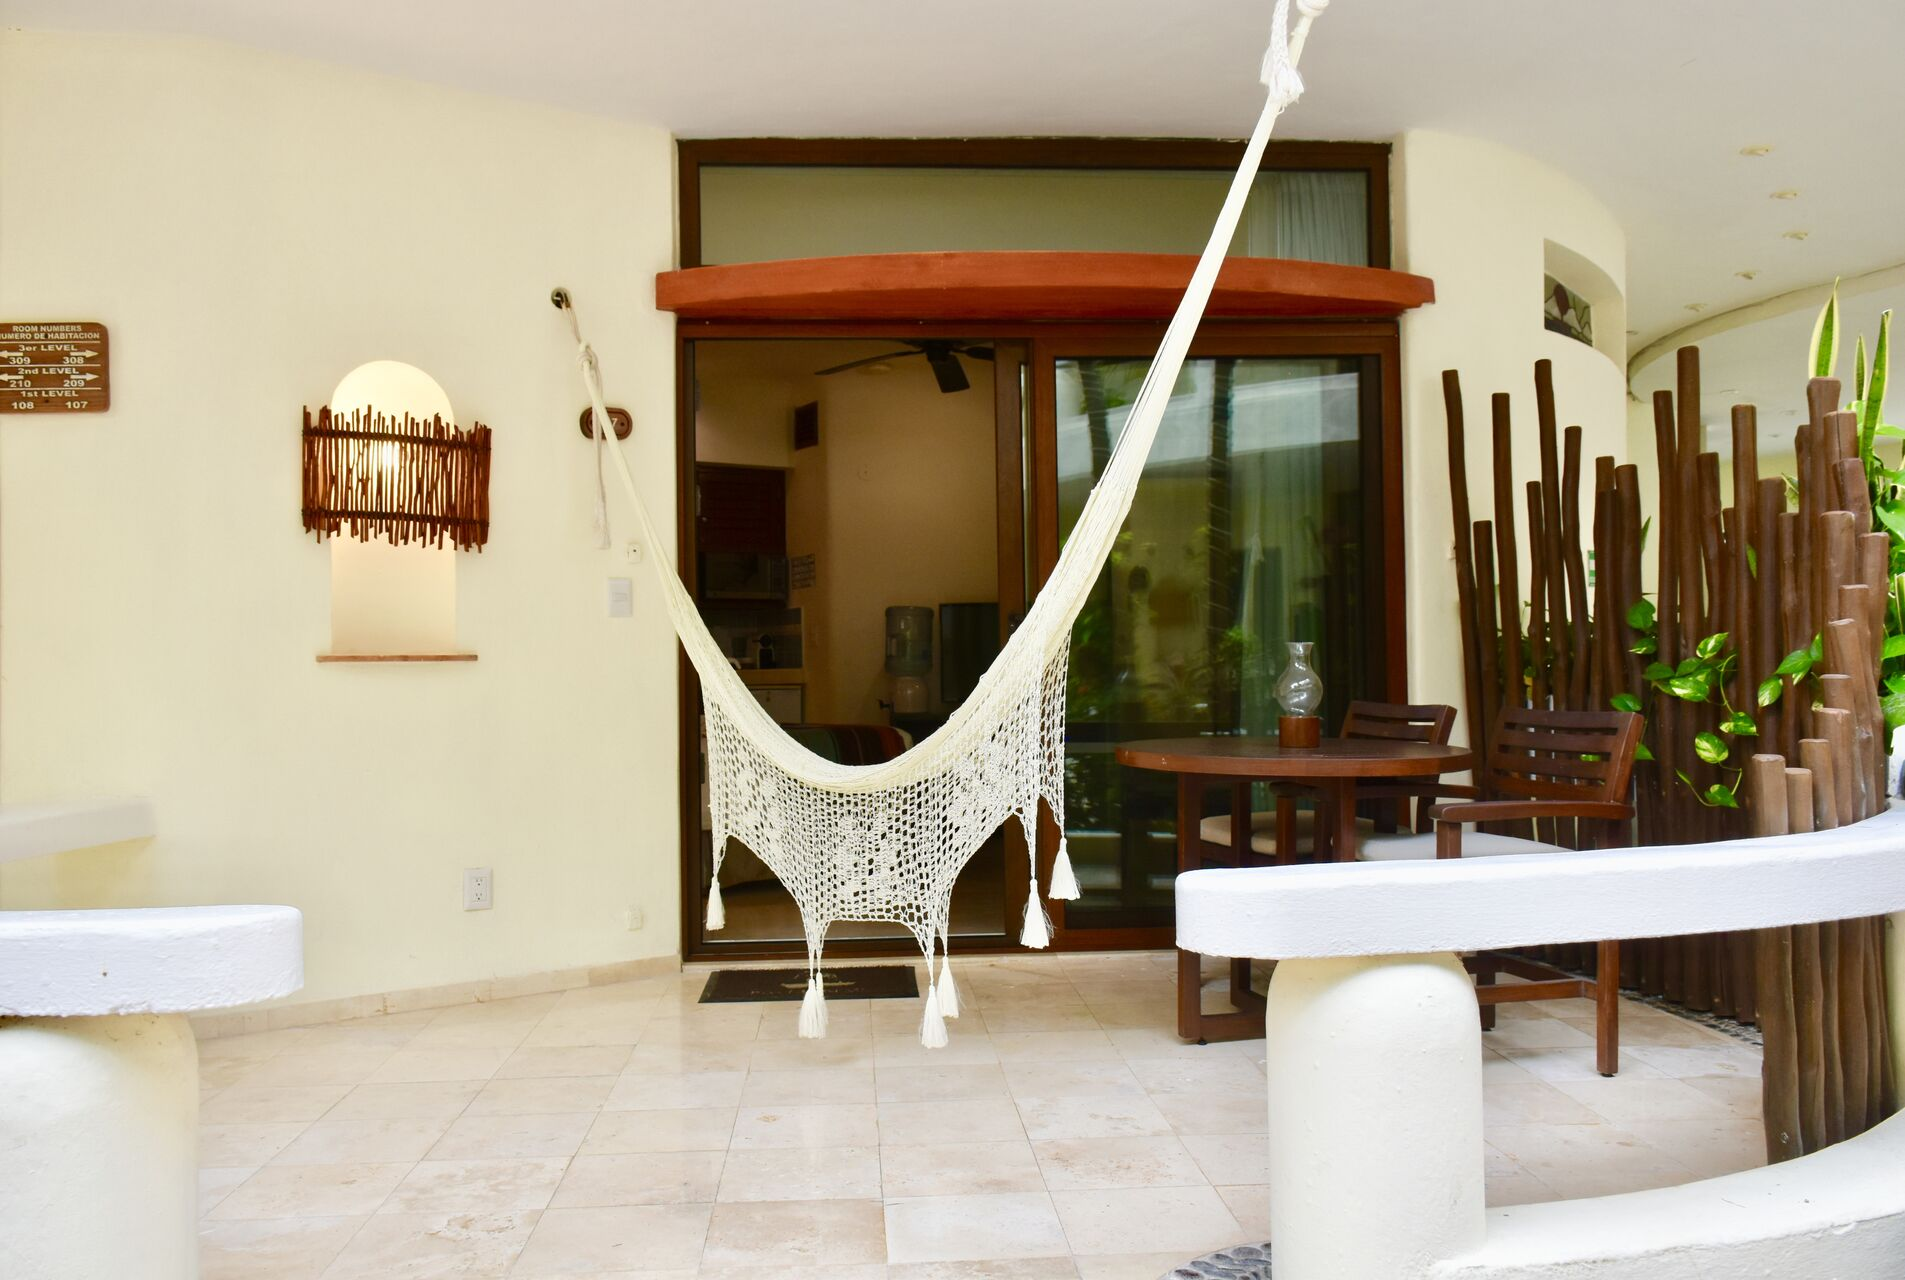 Large balcony with chairs and hammock.